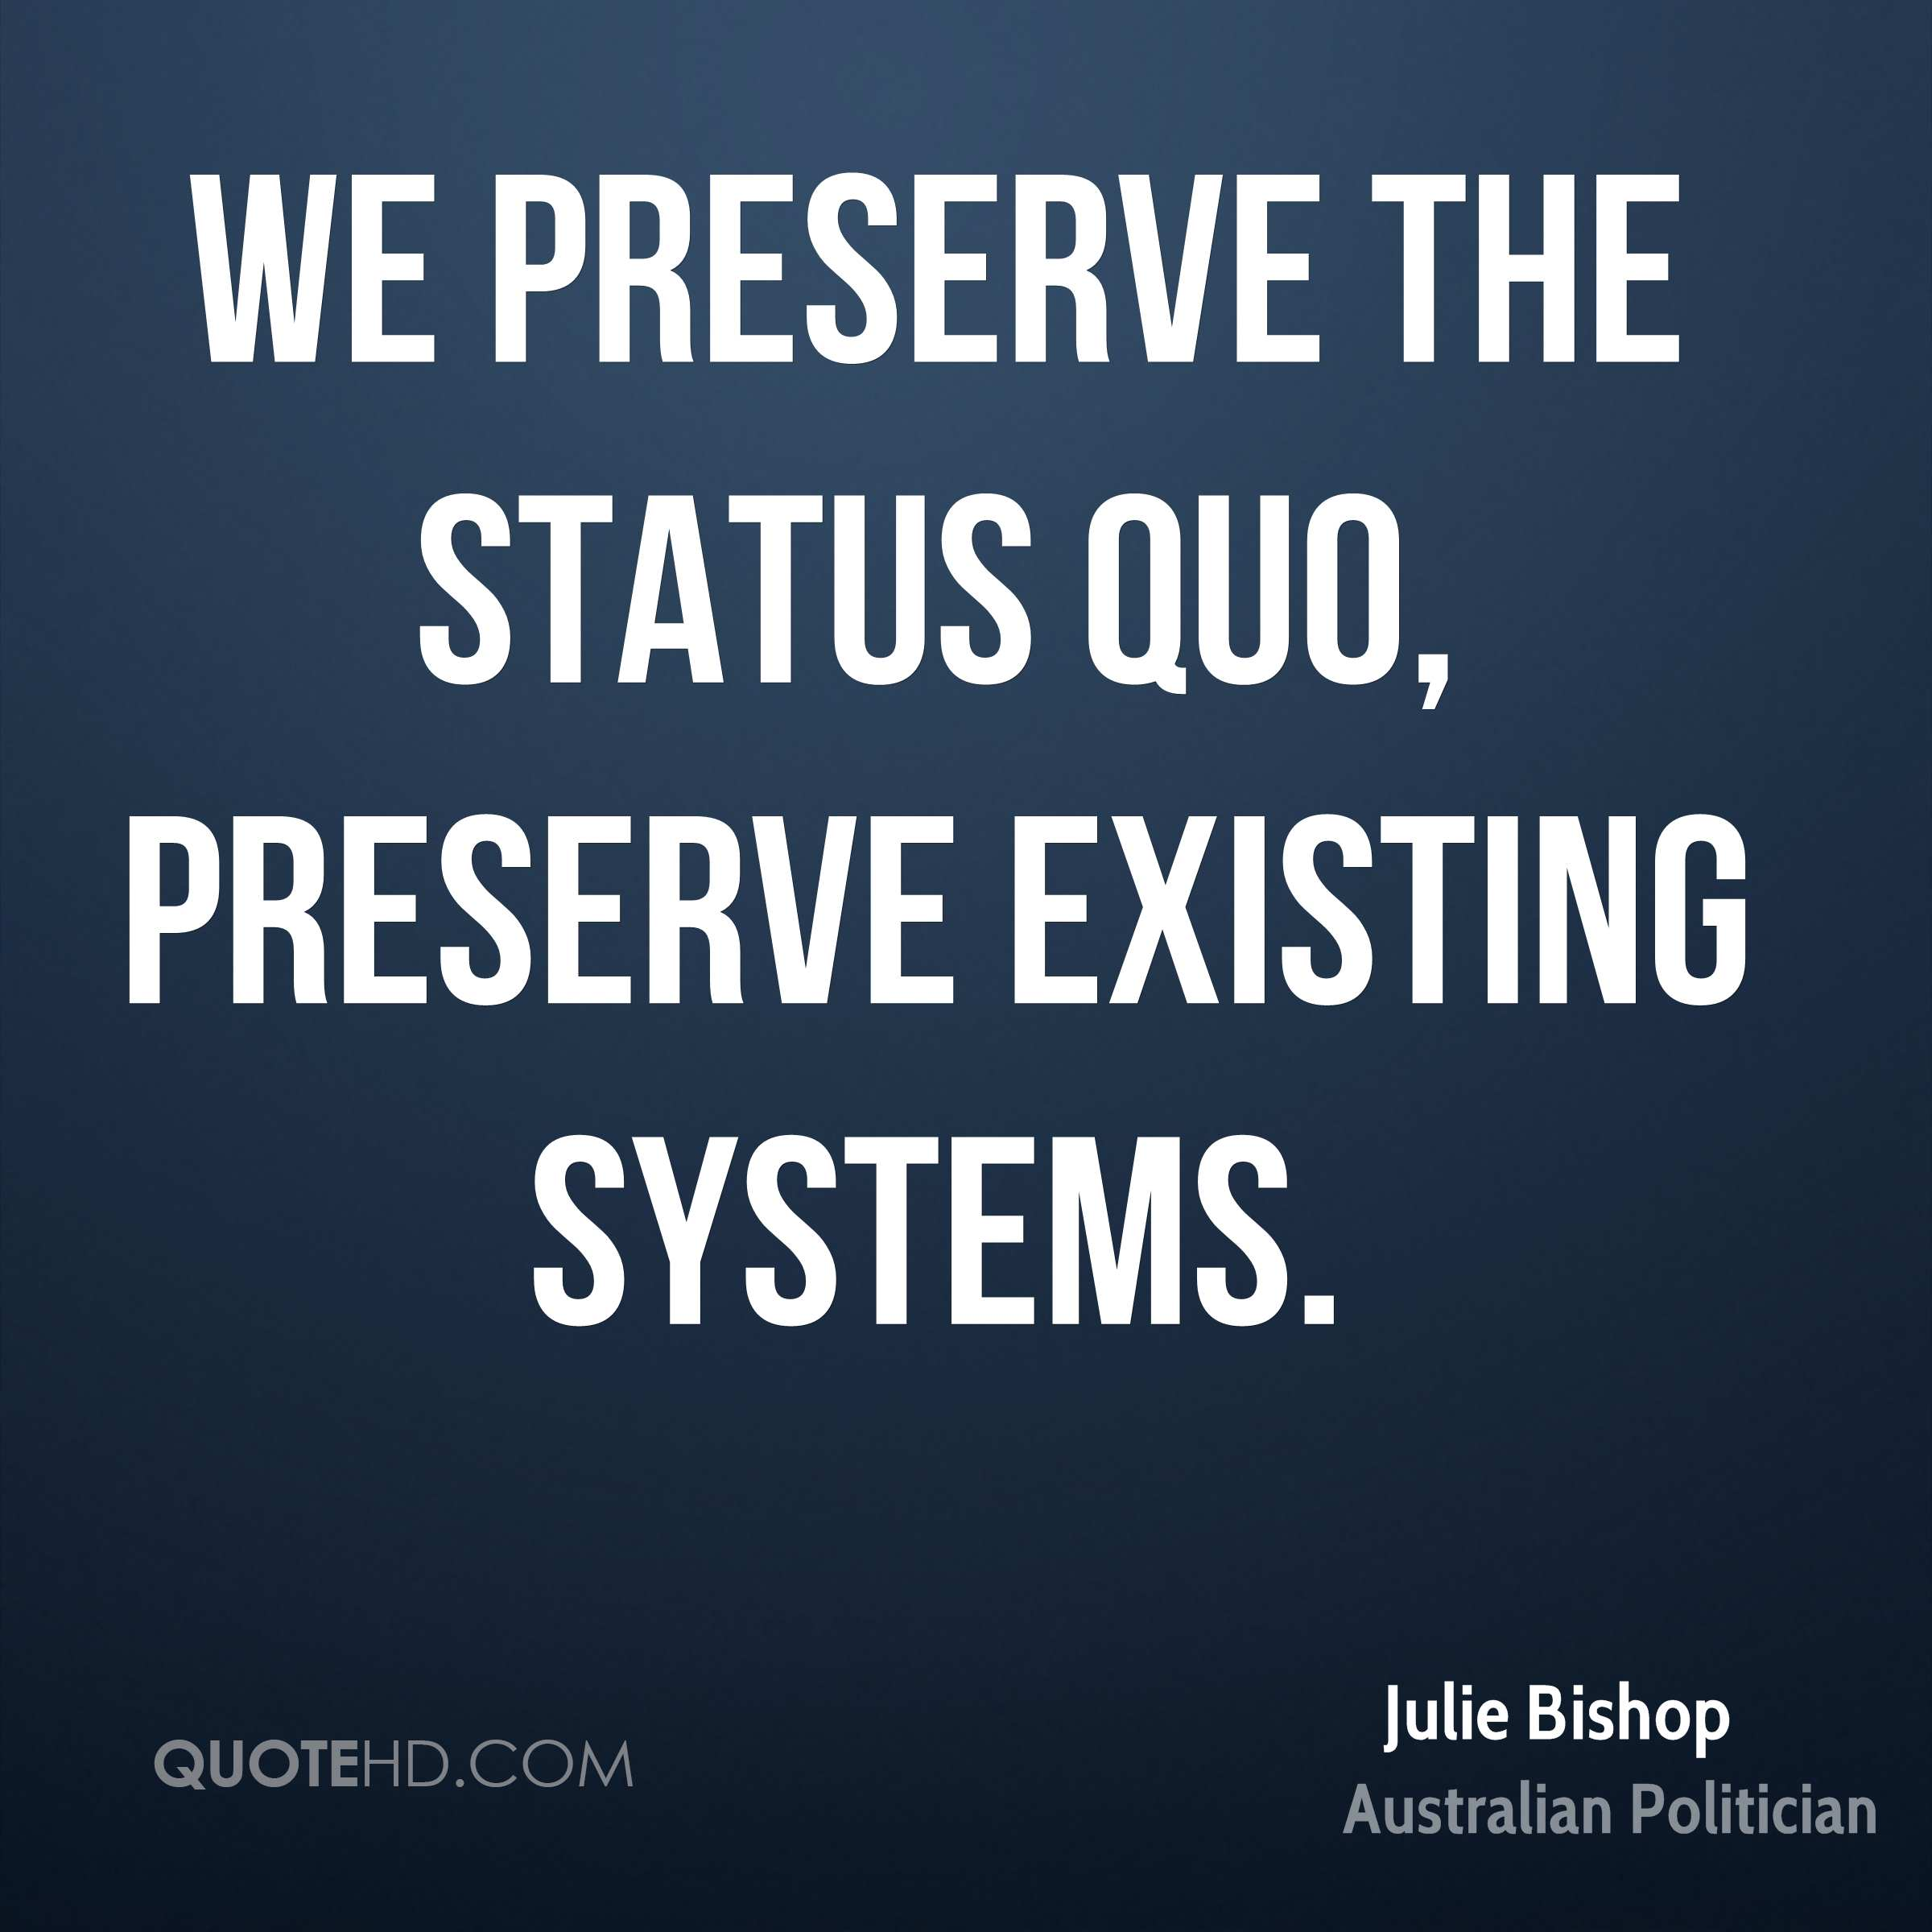 We preserve the status quo, preserve existing systems.